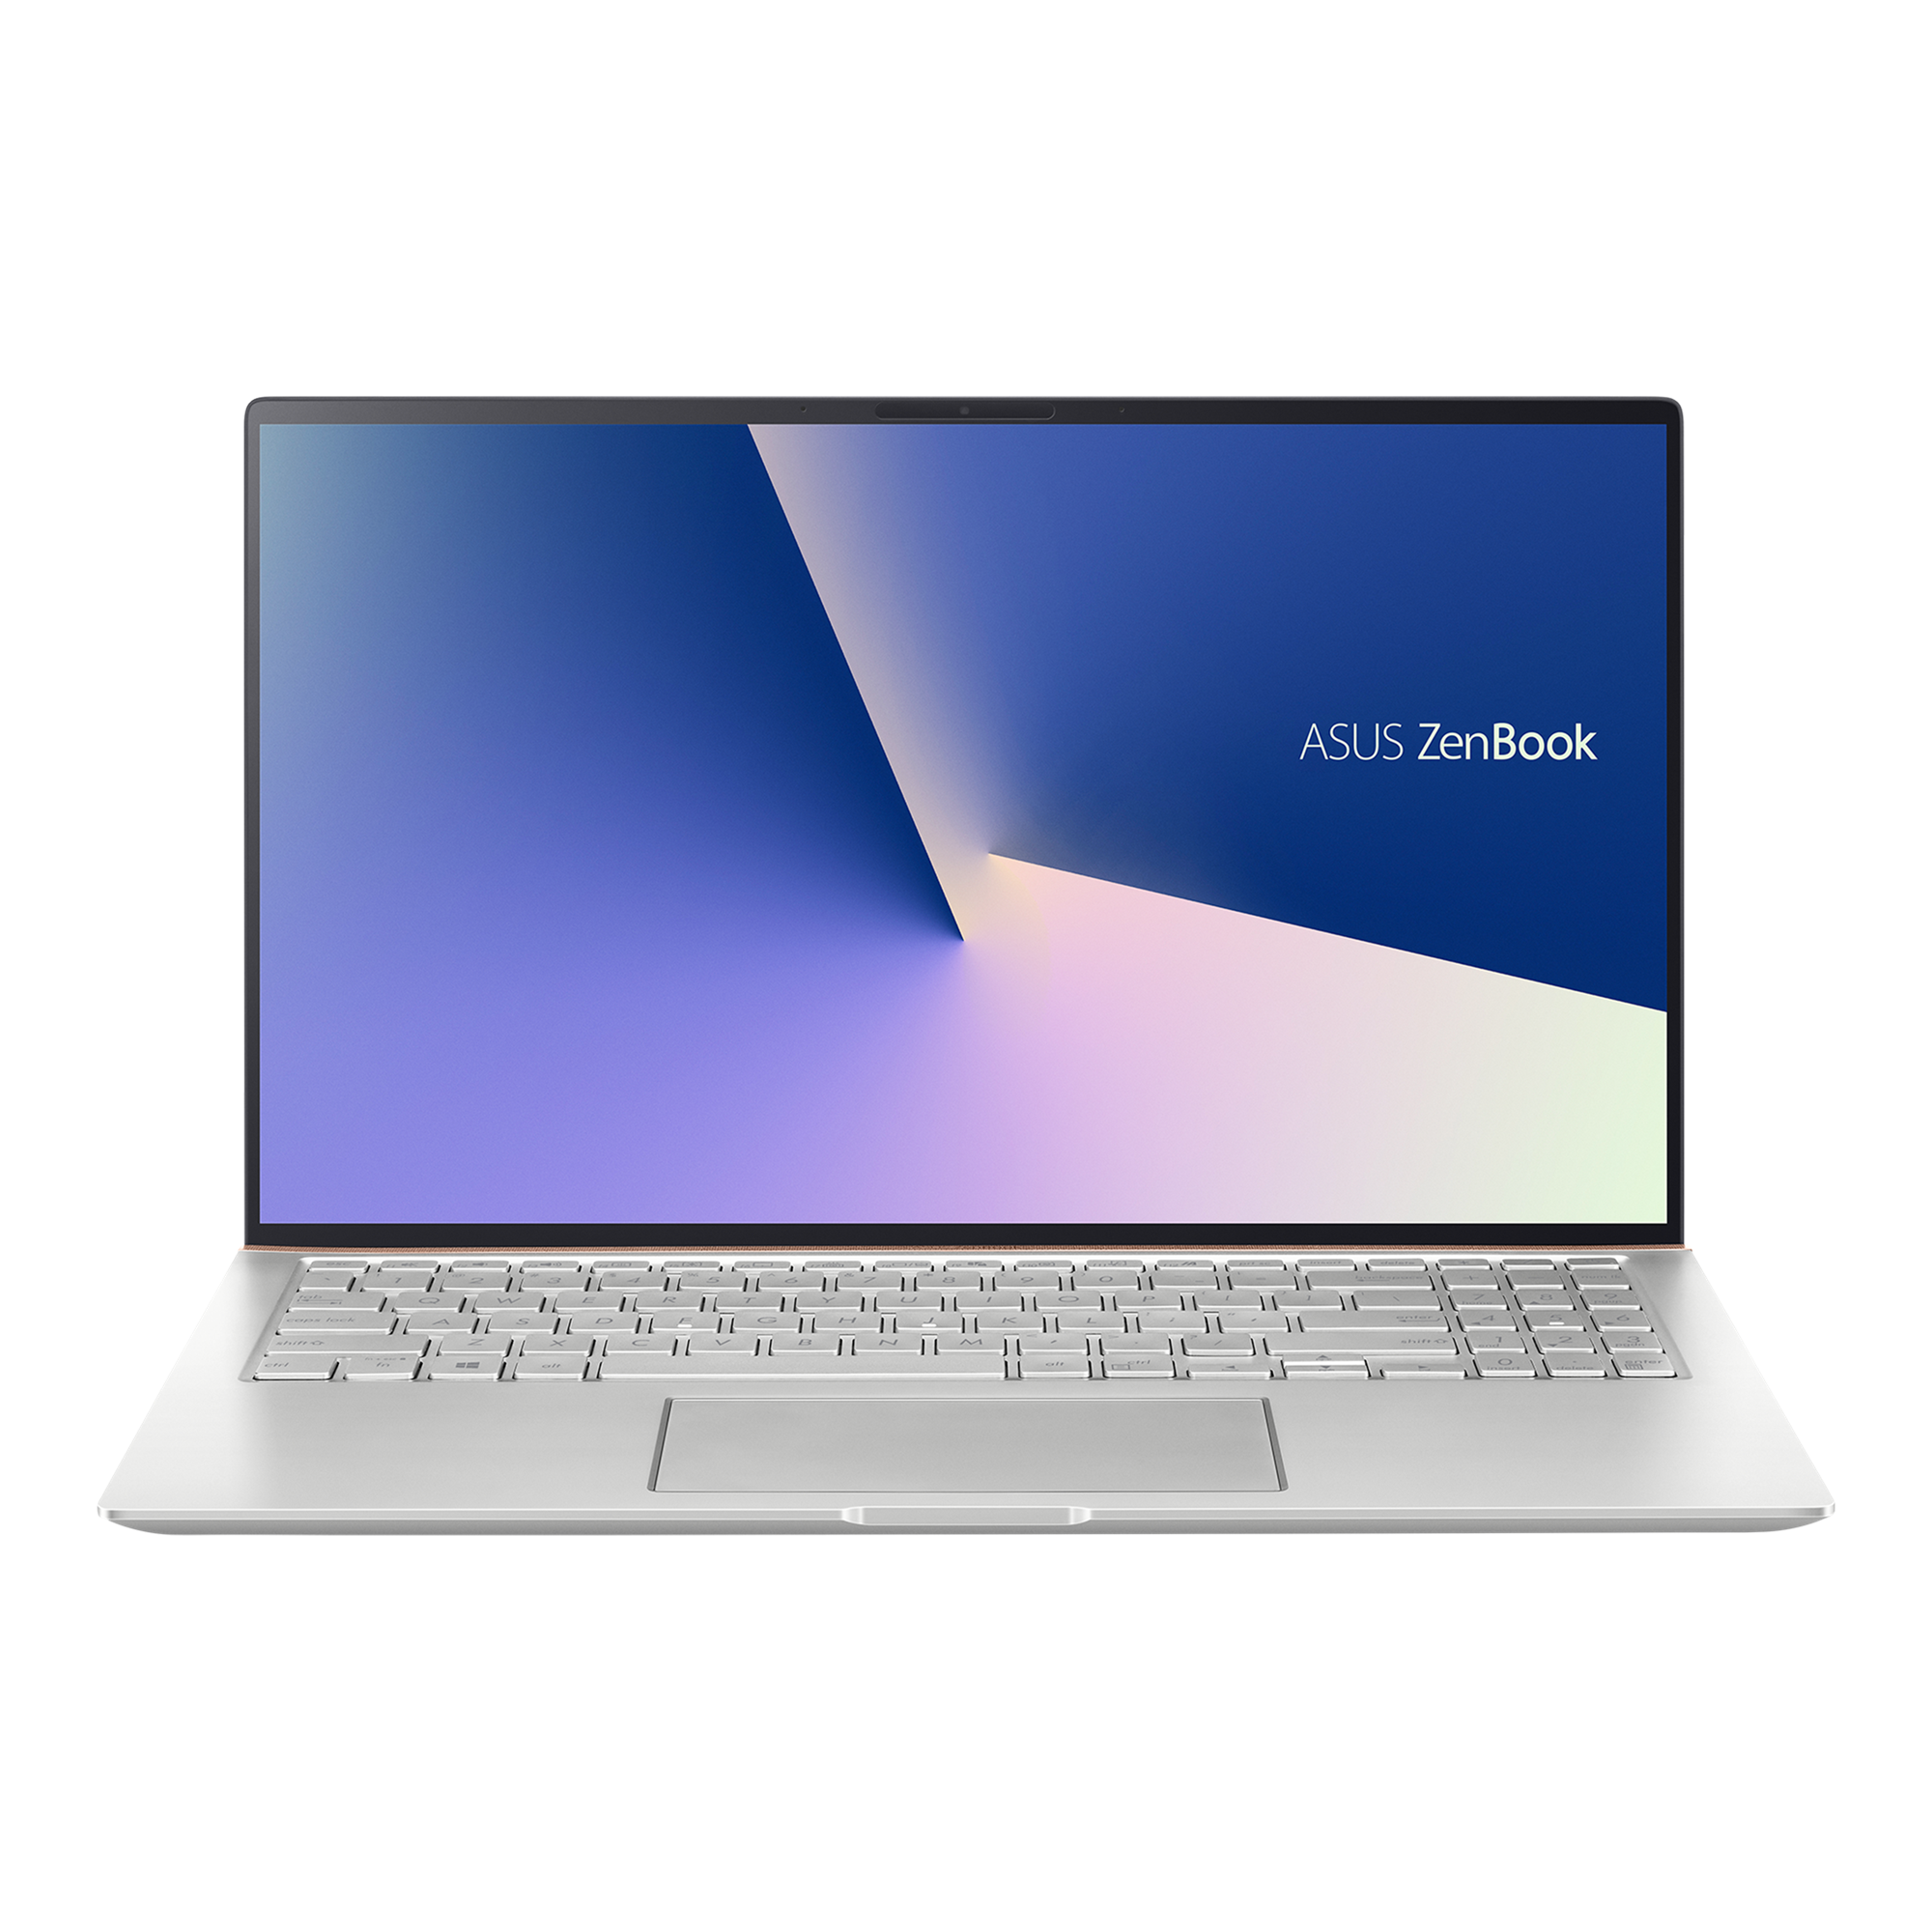 Asus Zenbook 15 Ux533 Laptops For Home Asus Indonesia